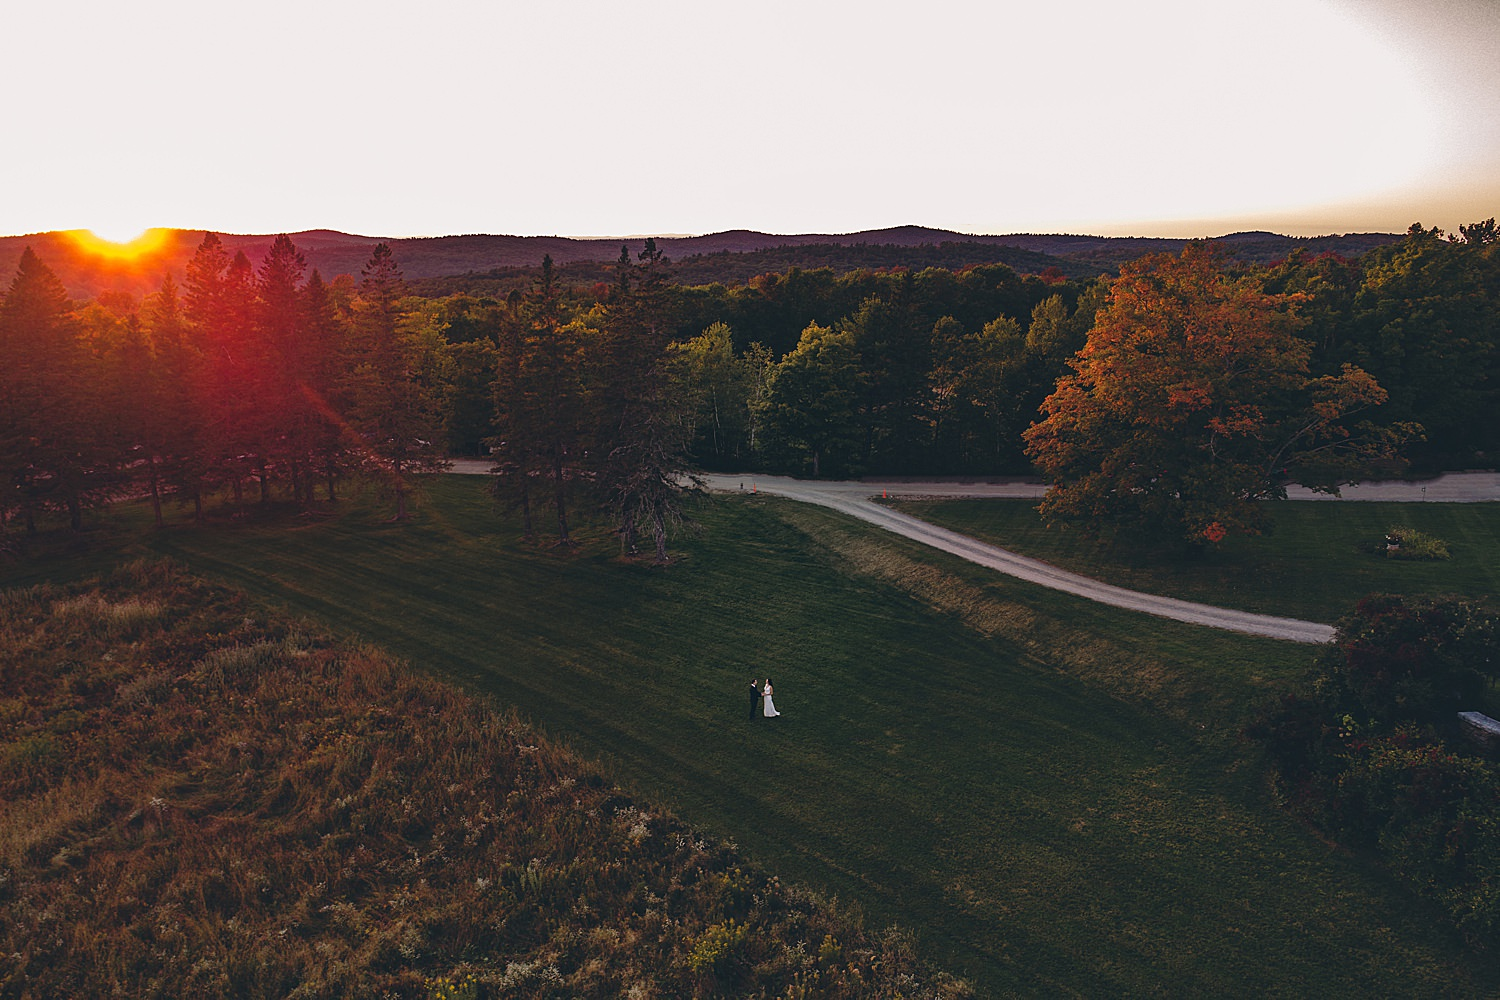 drone image of bride and groom at sunset